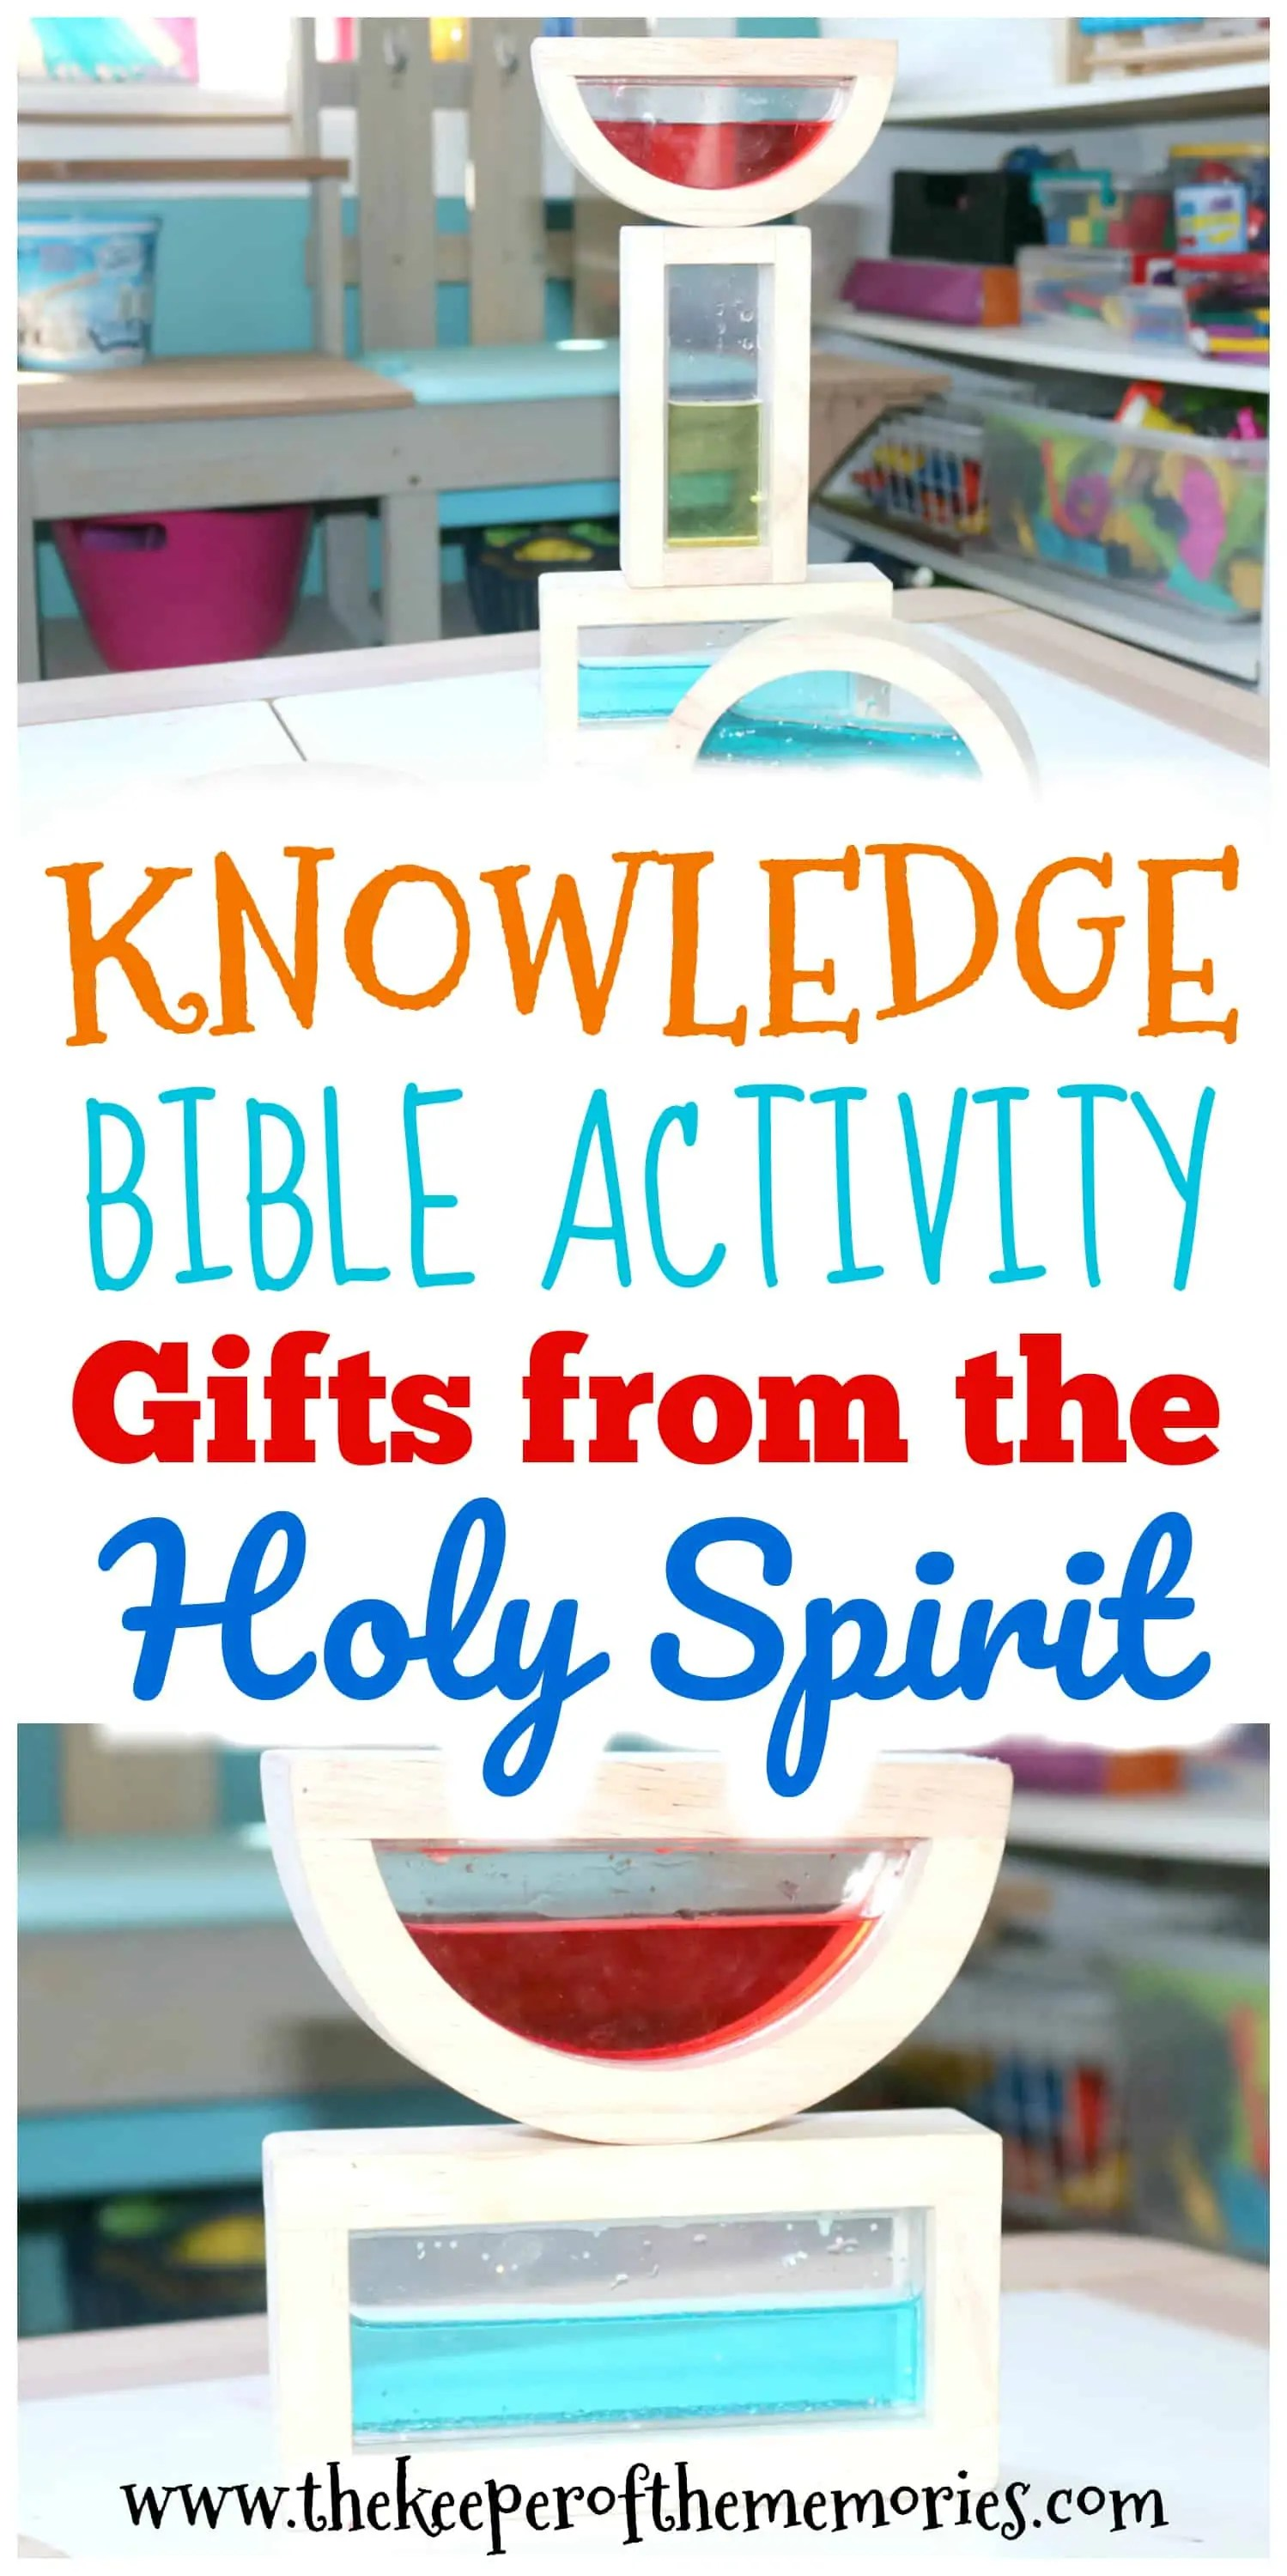 Ts From The Holy Spirit Knowledge Bible Activity